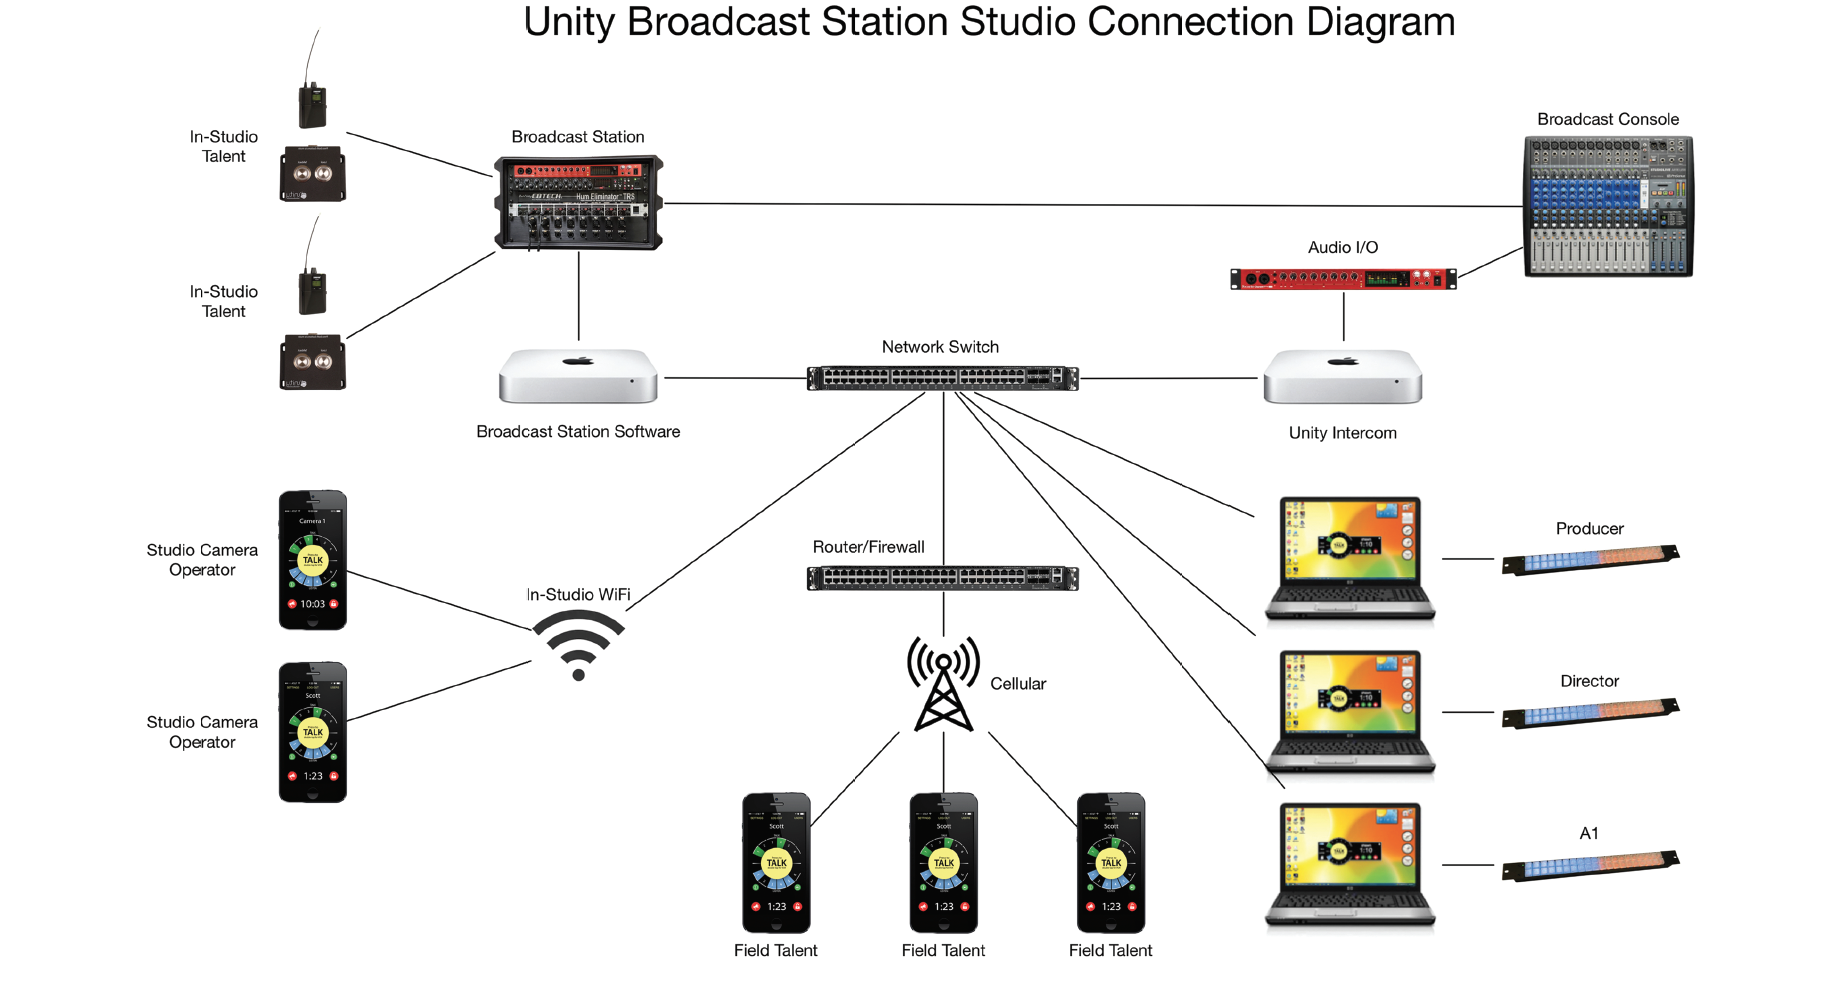 Broadcast Station Diagram.png